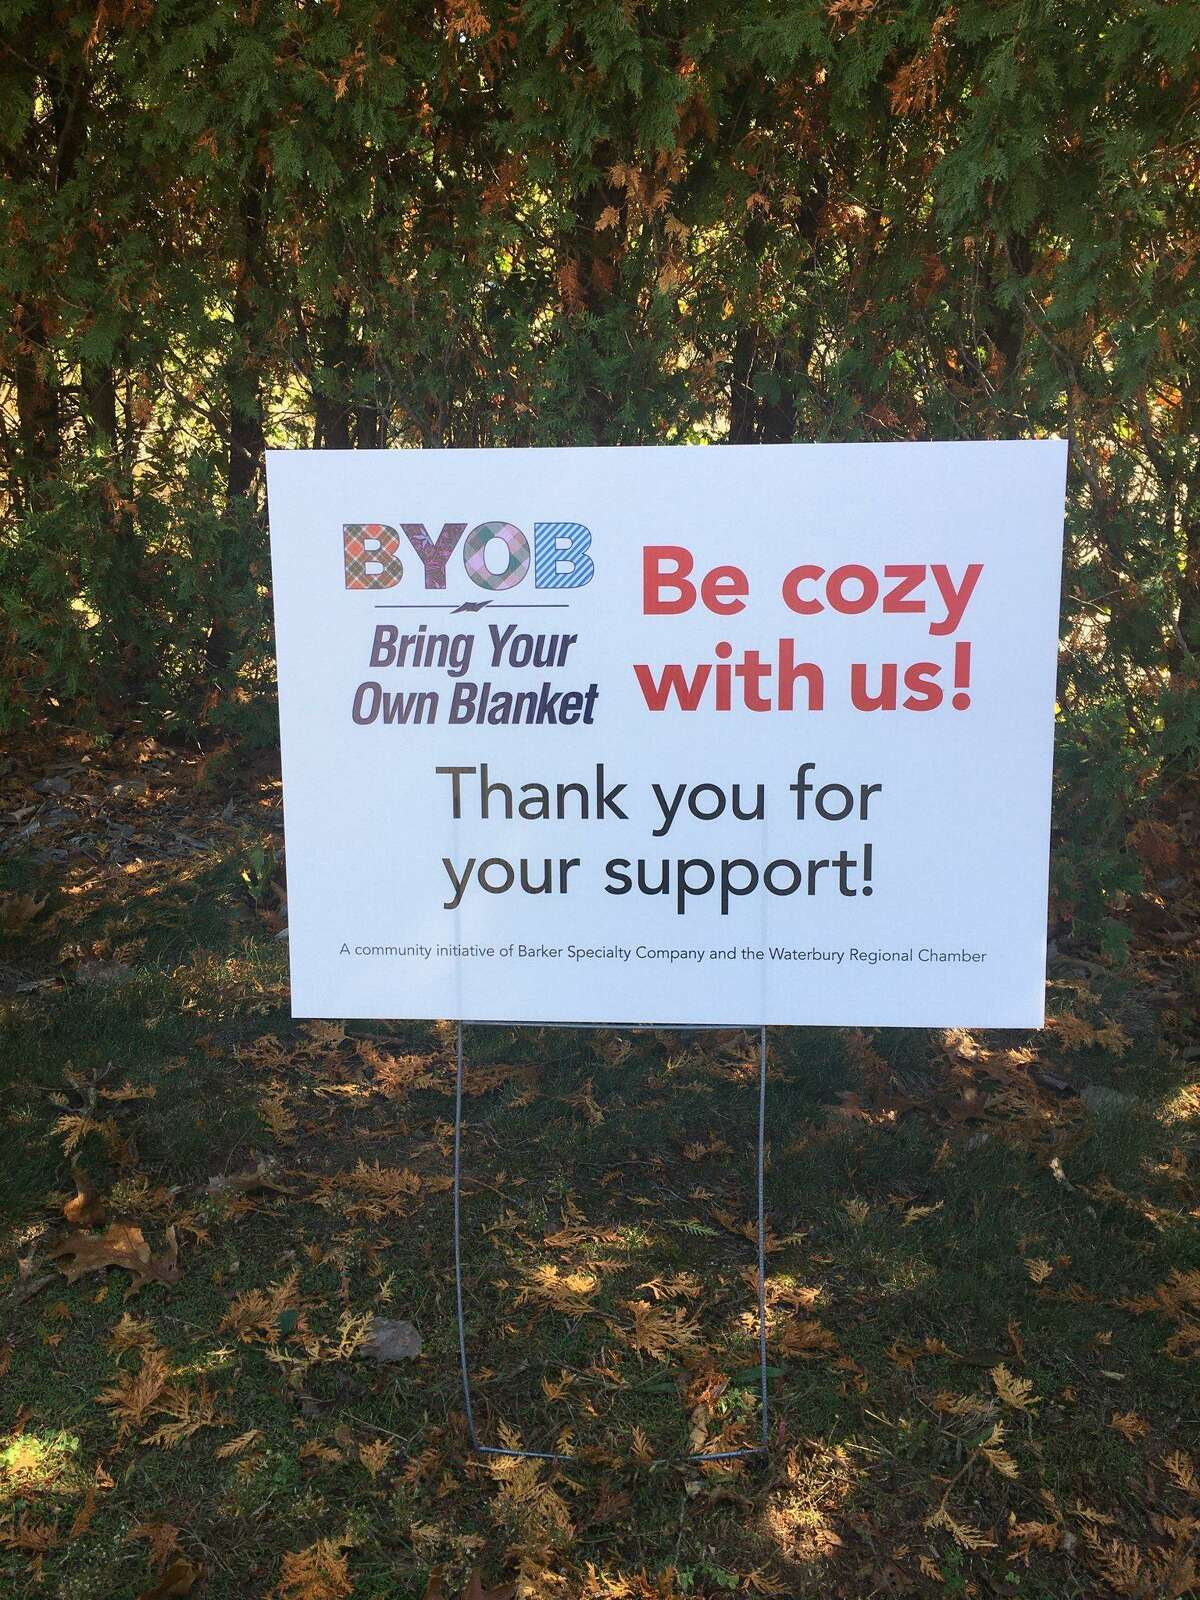 A sign for the BYOB (